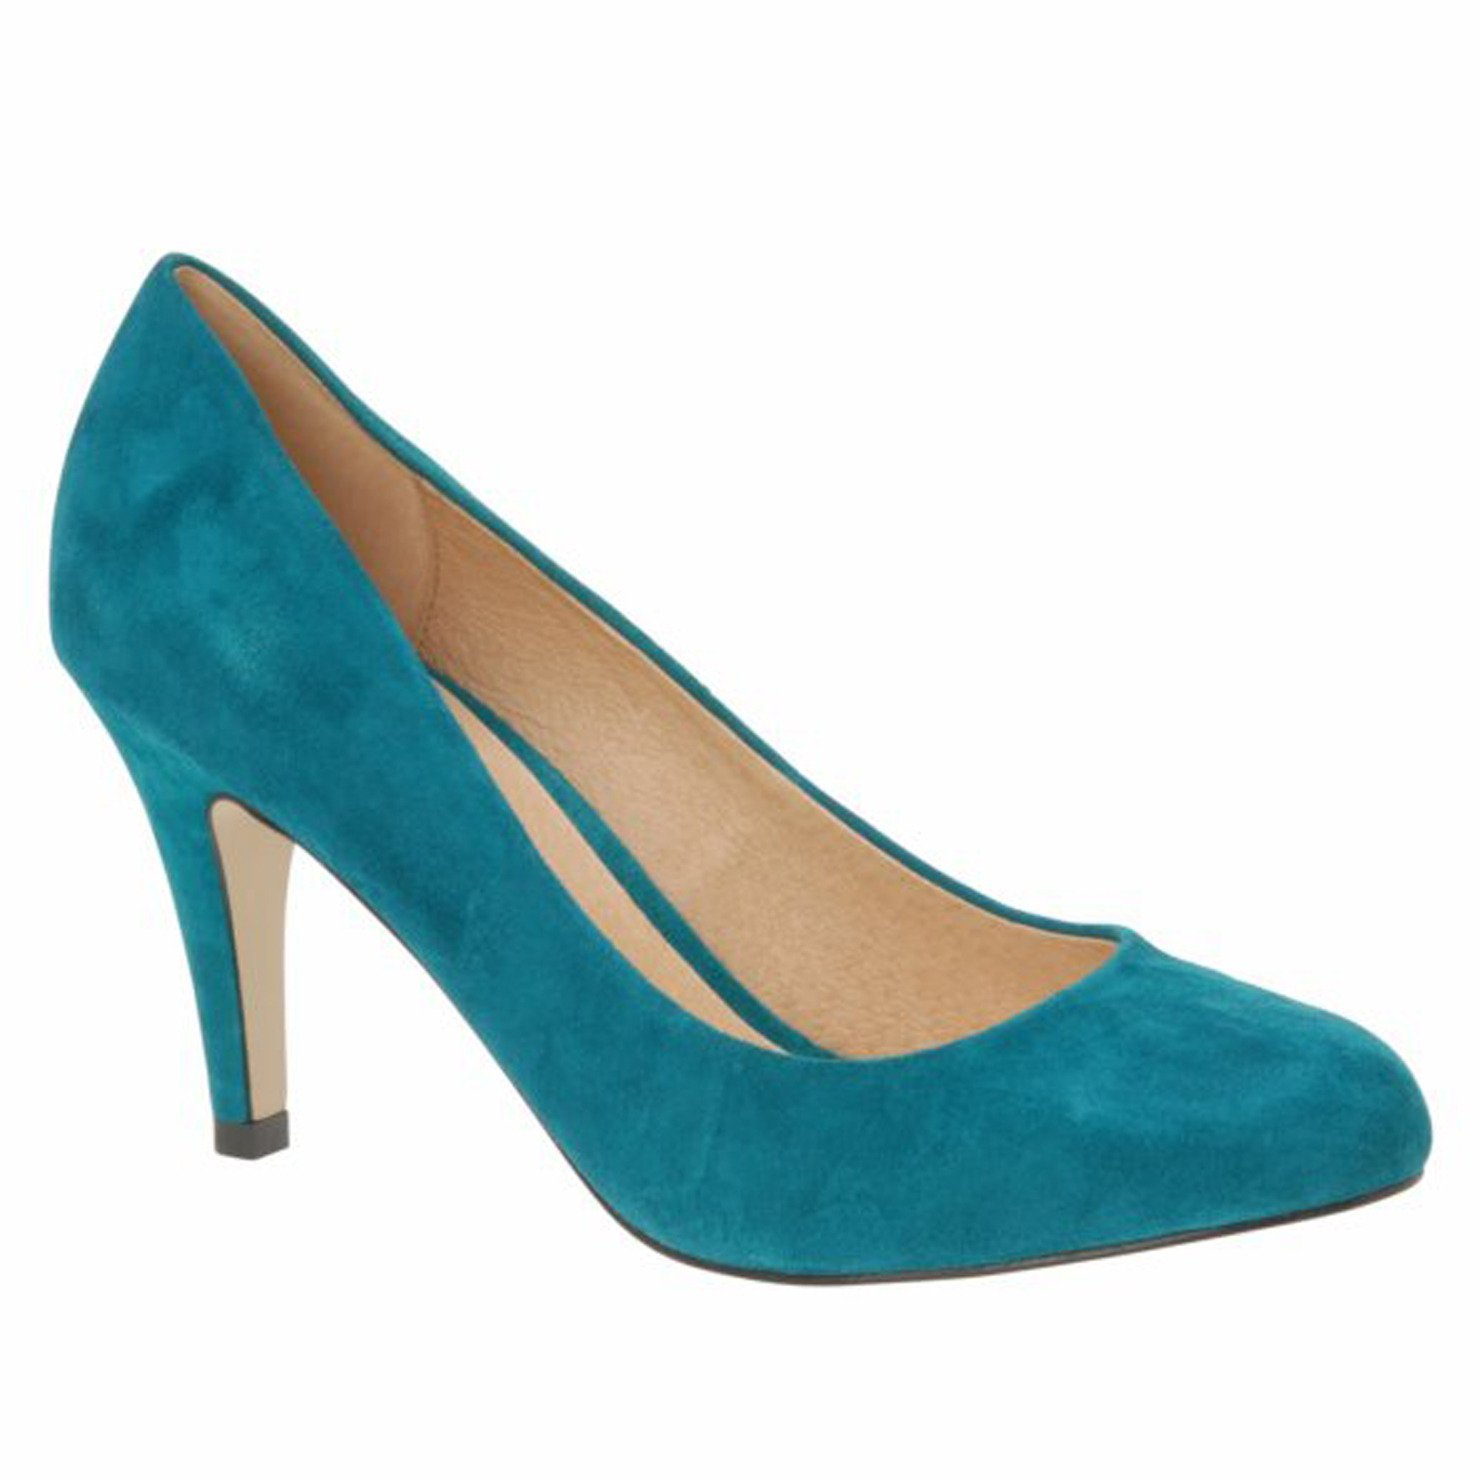 Free shipping BOTH ways on teal shoes for women, from our vast selection of styles. Fast delivery, and 24/7/ real-person service with a smile. Click or call